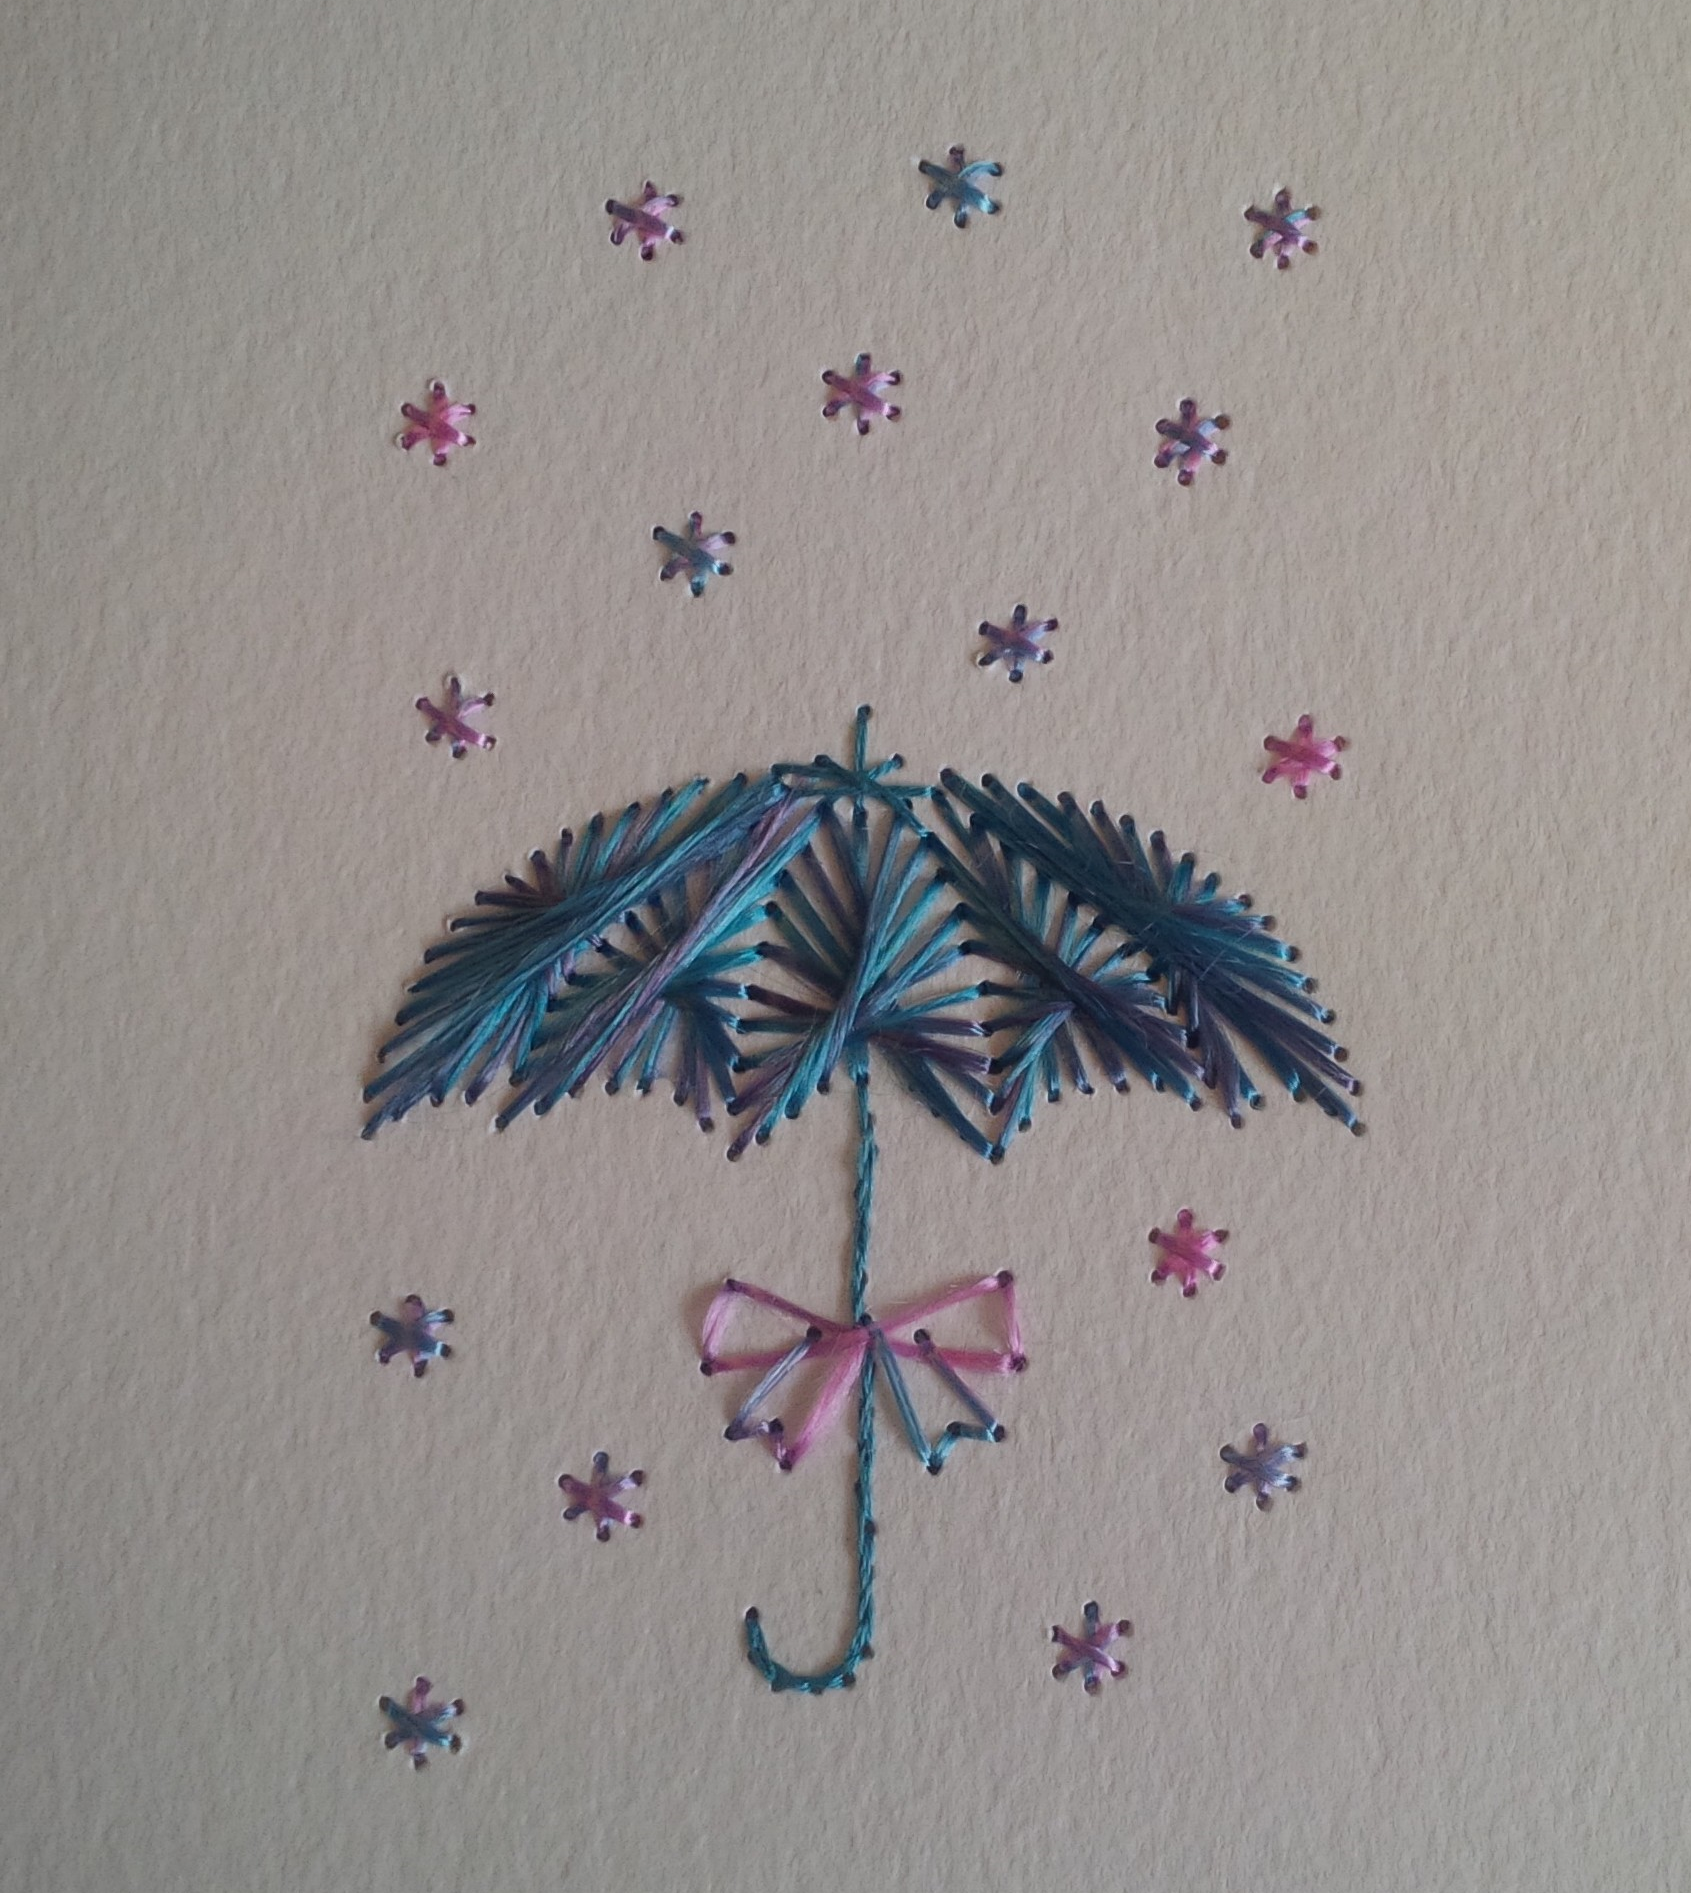 Colours used:   Umbrella: Blue & Purple   Shower: Pink & Blue   Stitched by Jacko's Crafty Corner